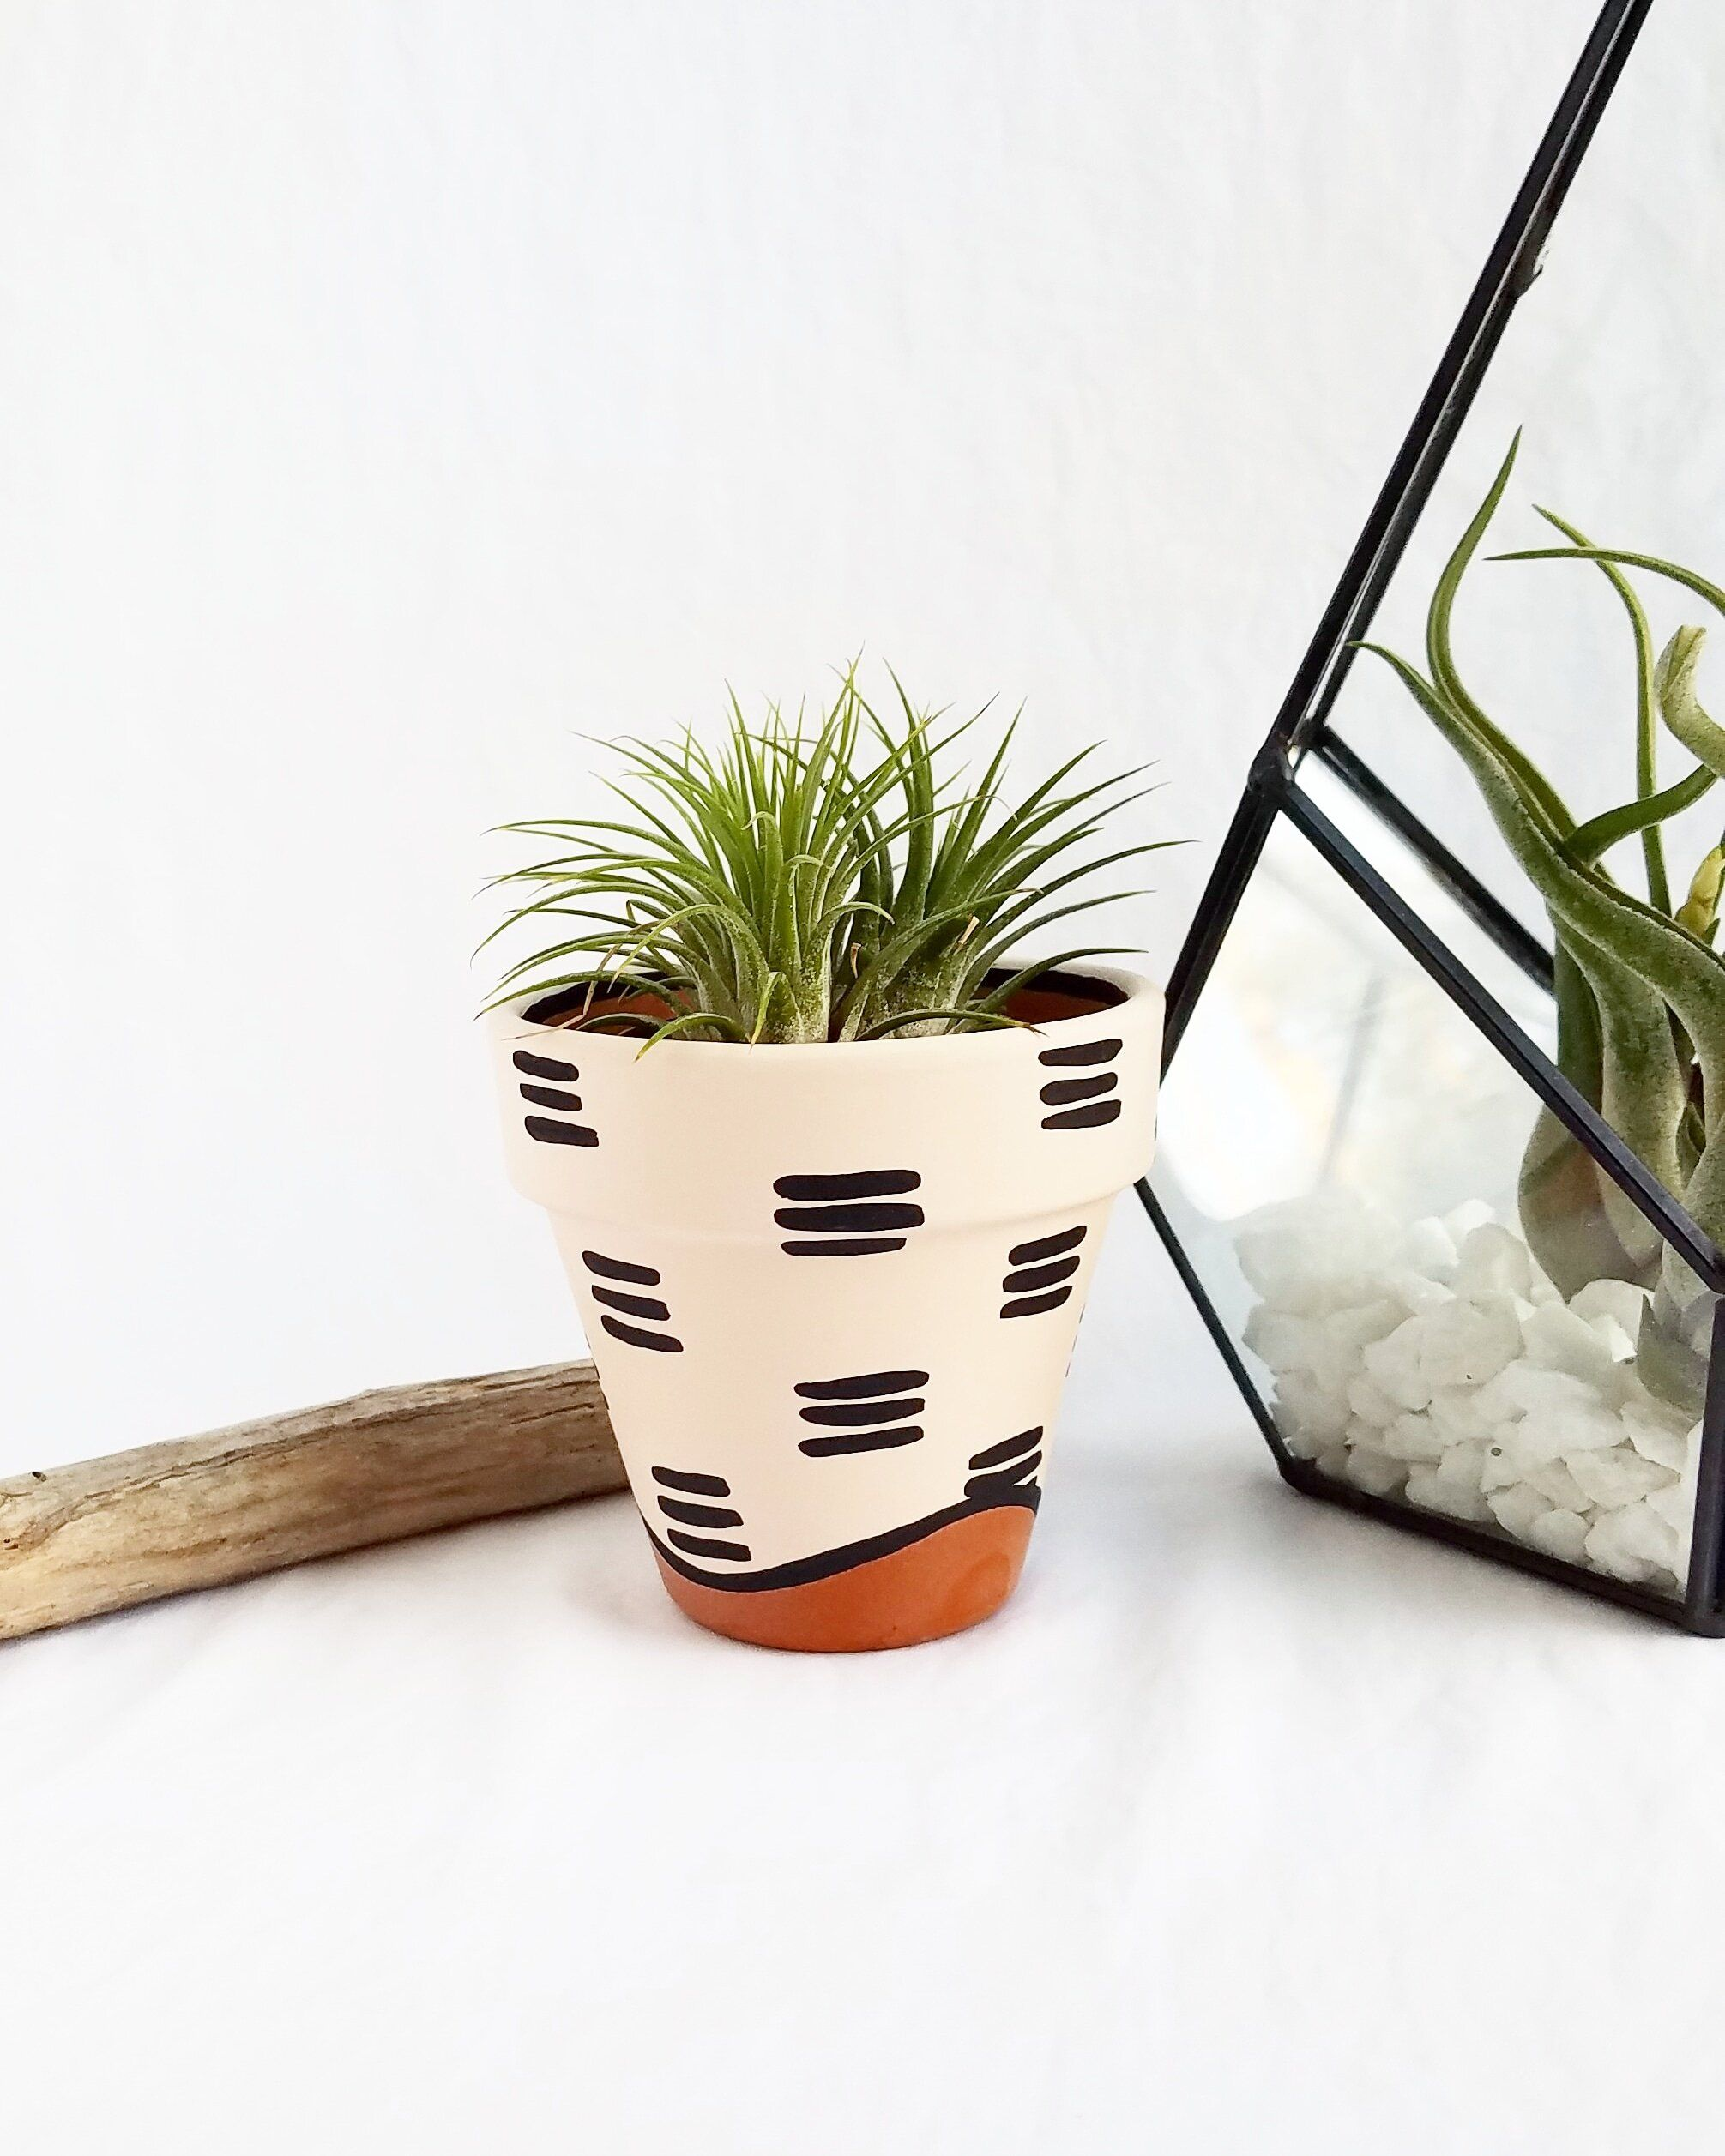 Dotty Planter Franky And J Designs In 2020 Painted Pots Diy Painted Terra Cotta Pots Painted Plant Pots